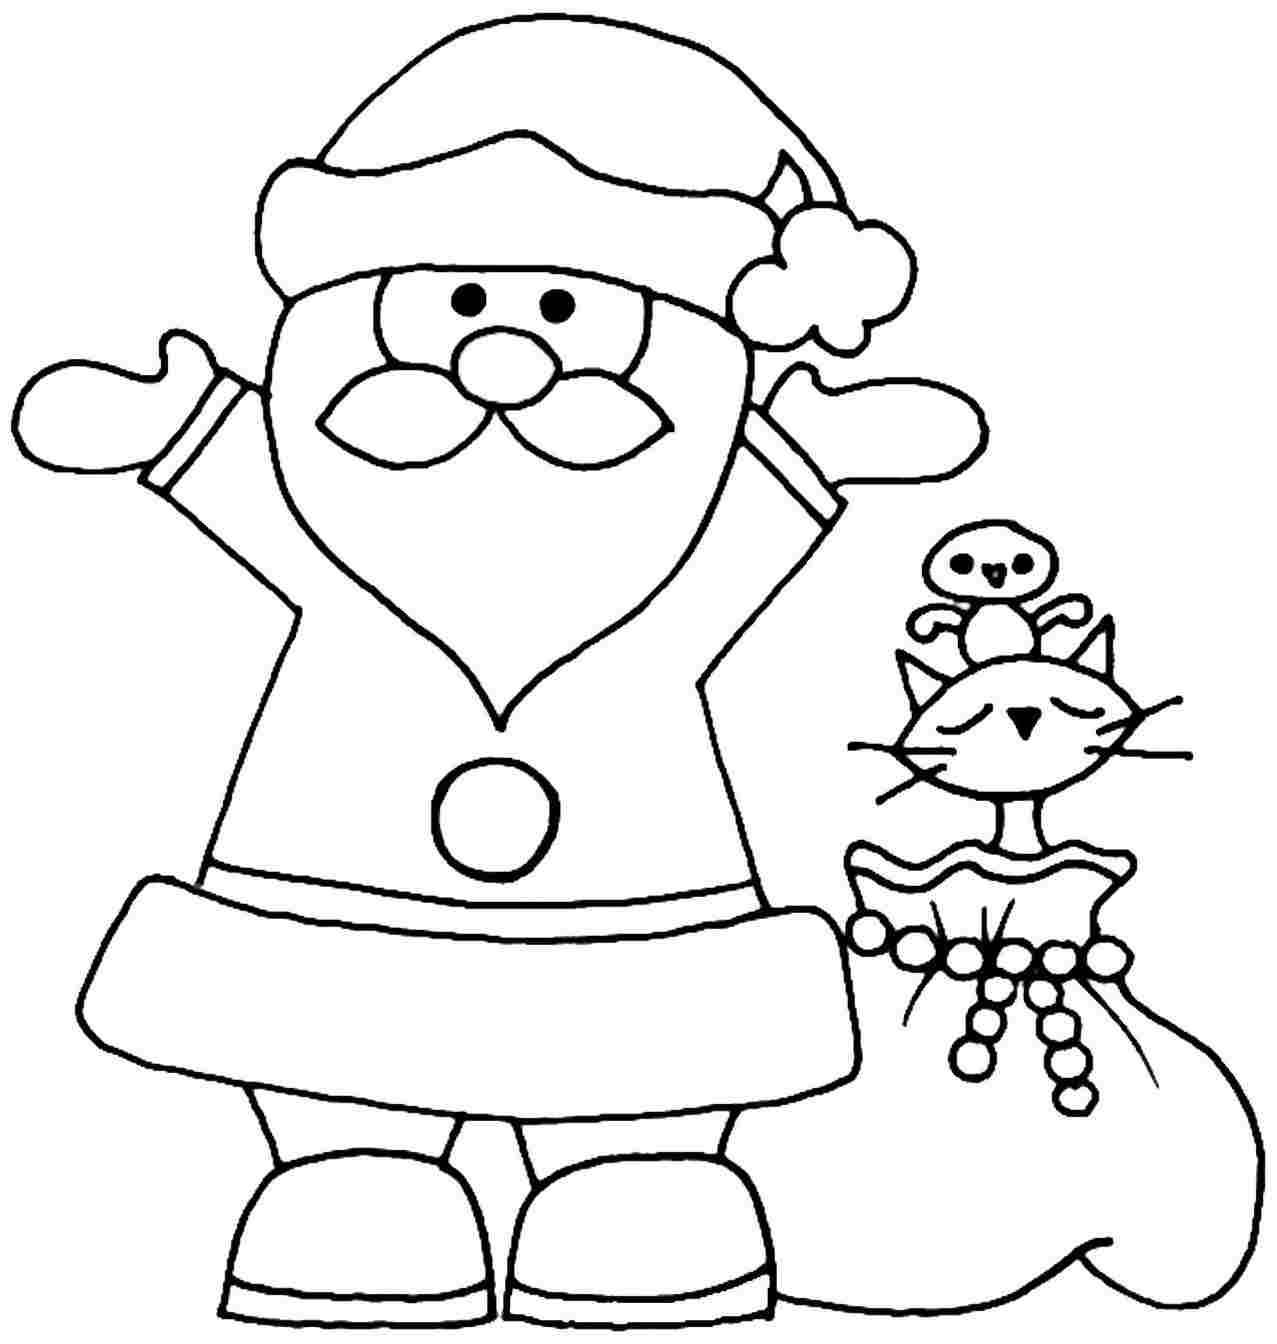 Santa Claus Coloring Pages Image Picture Photo Wallpaper 09